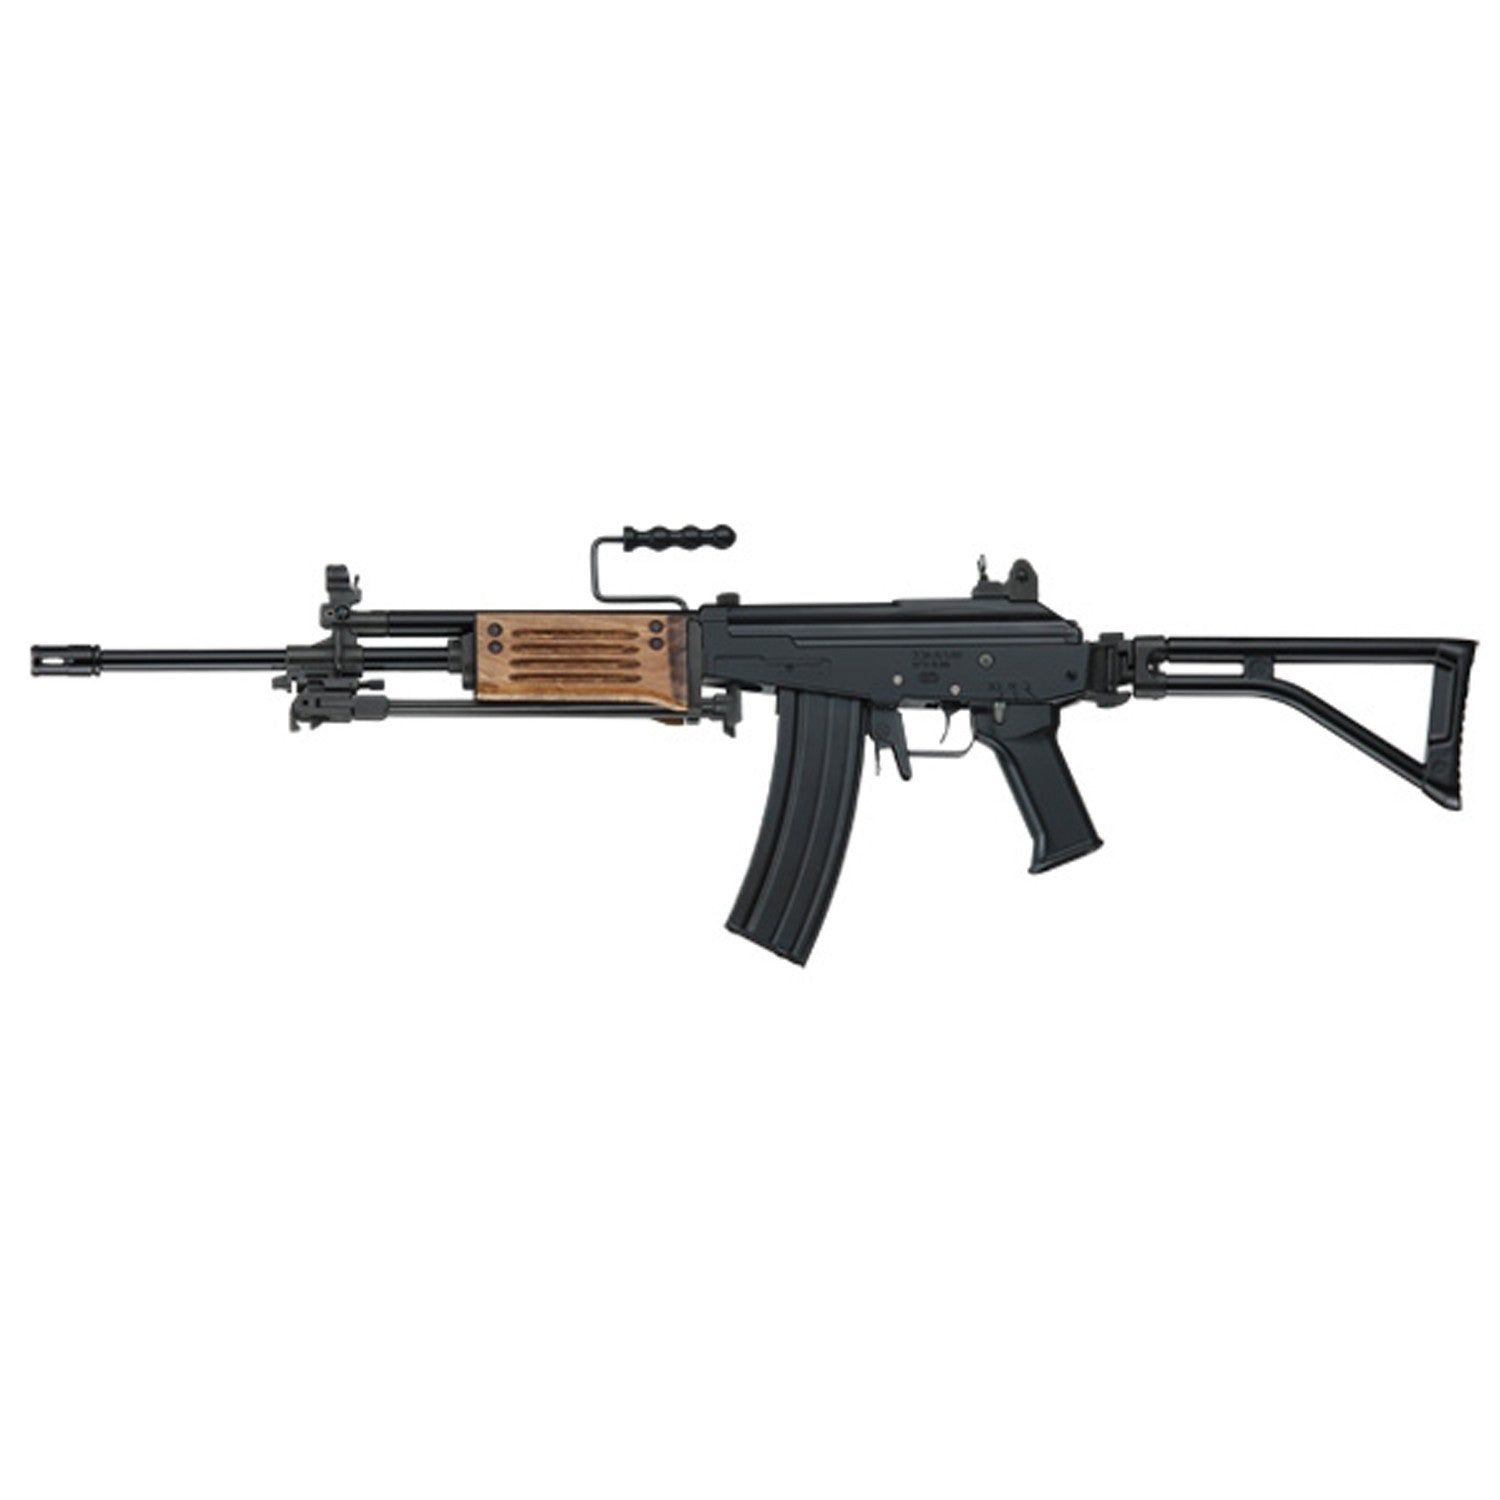 ICS ICAR Arm (Wood Handguard) - Motor: Motor types vary by request ! Body: Steel、Aluminum Magazine capacity: 450 rounds Muzzle velocity: 395fps